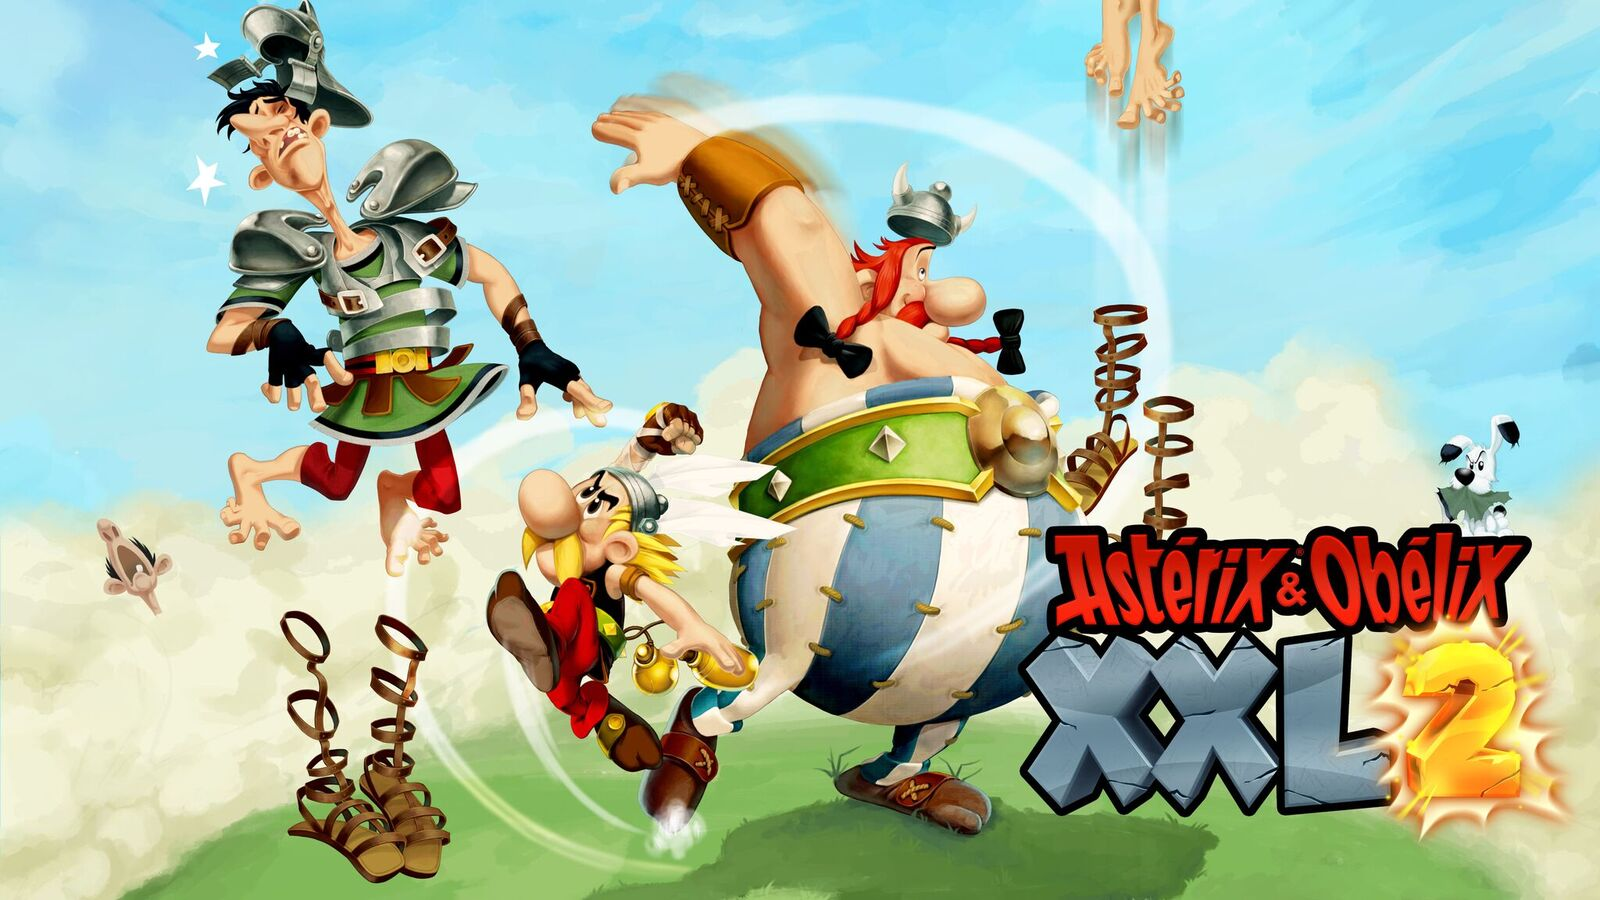 Asterix Obelix Xxl2 Remaster Improvements Detailed And Highlighted